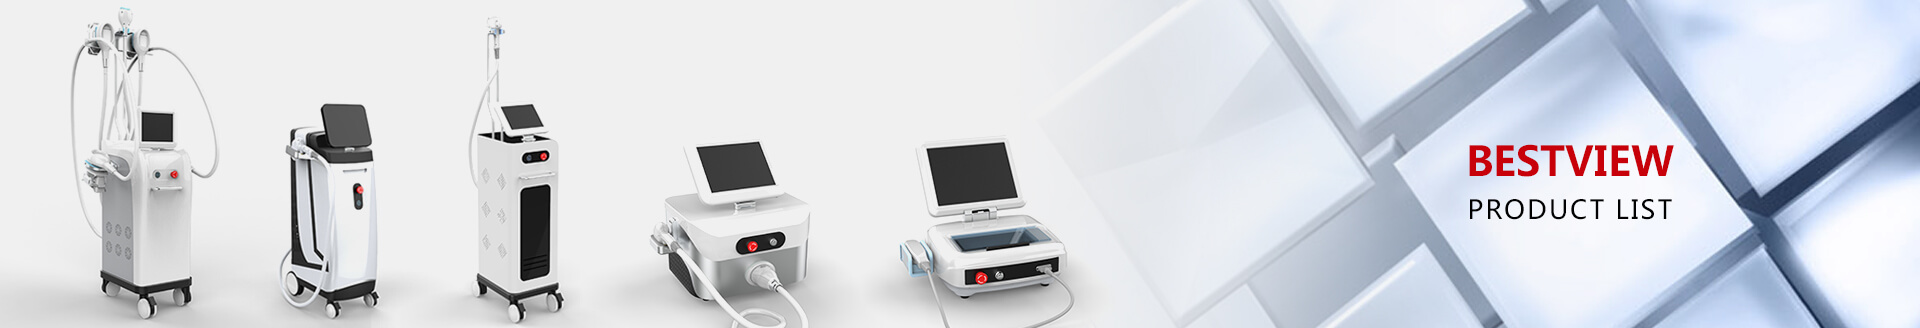 about Bestview medical laser beauty equipment